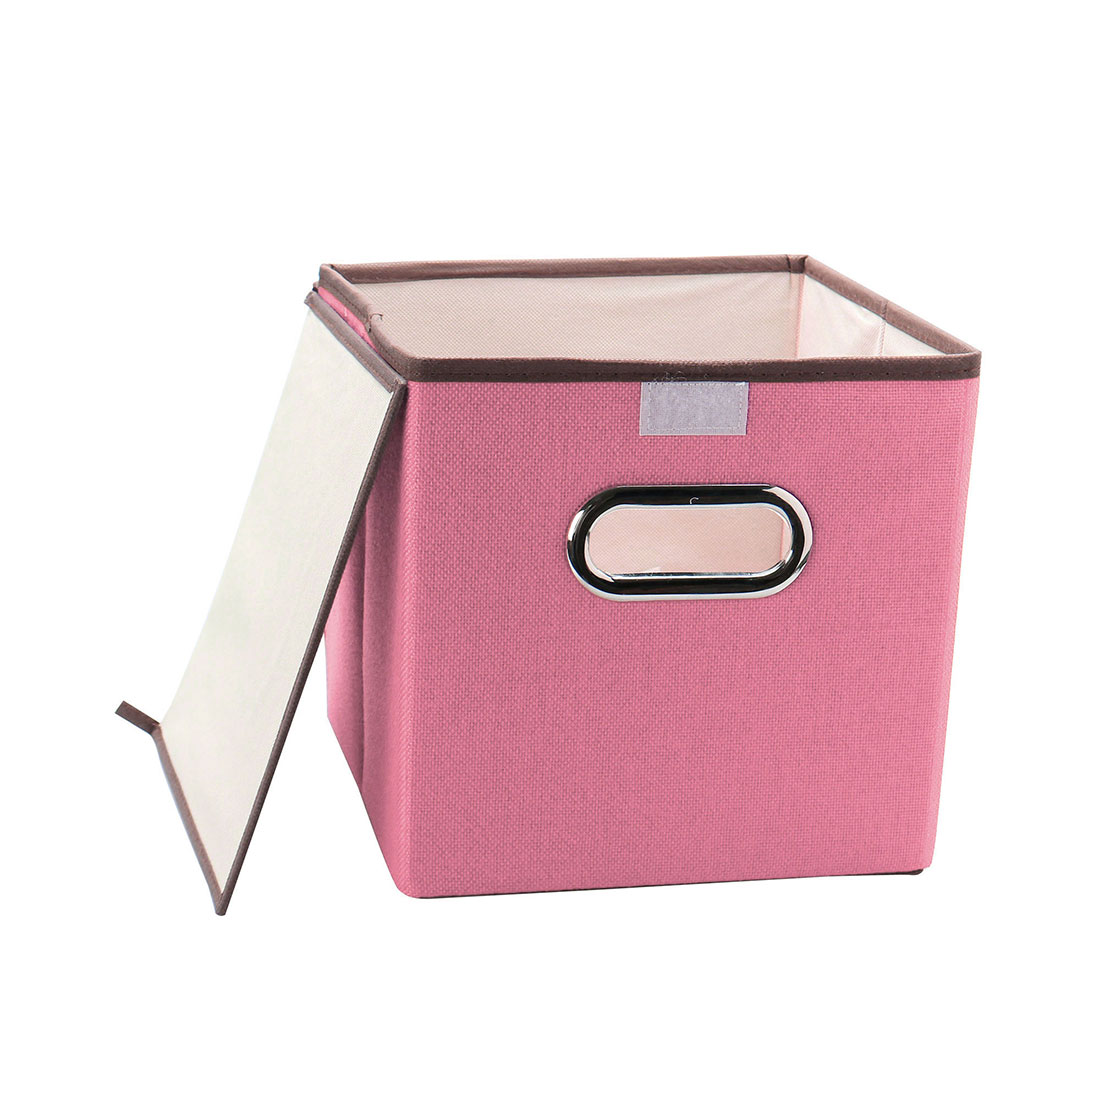 Pink Bins Foldable Storage Cube Bins Fabric Laundry Baskets Toy Box Organizers Pink